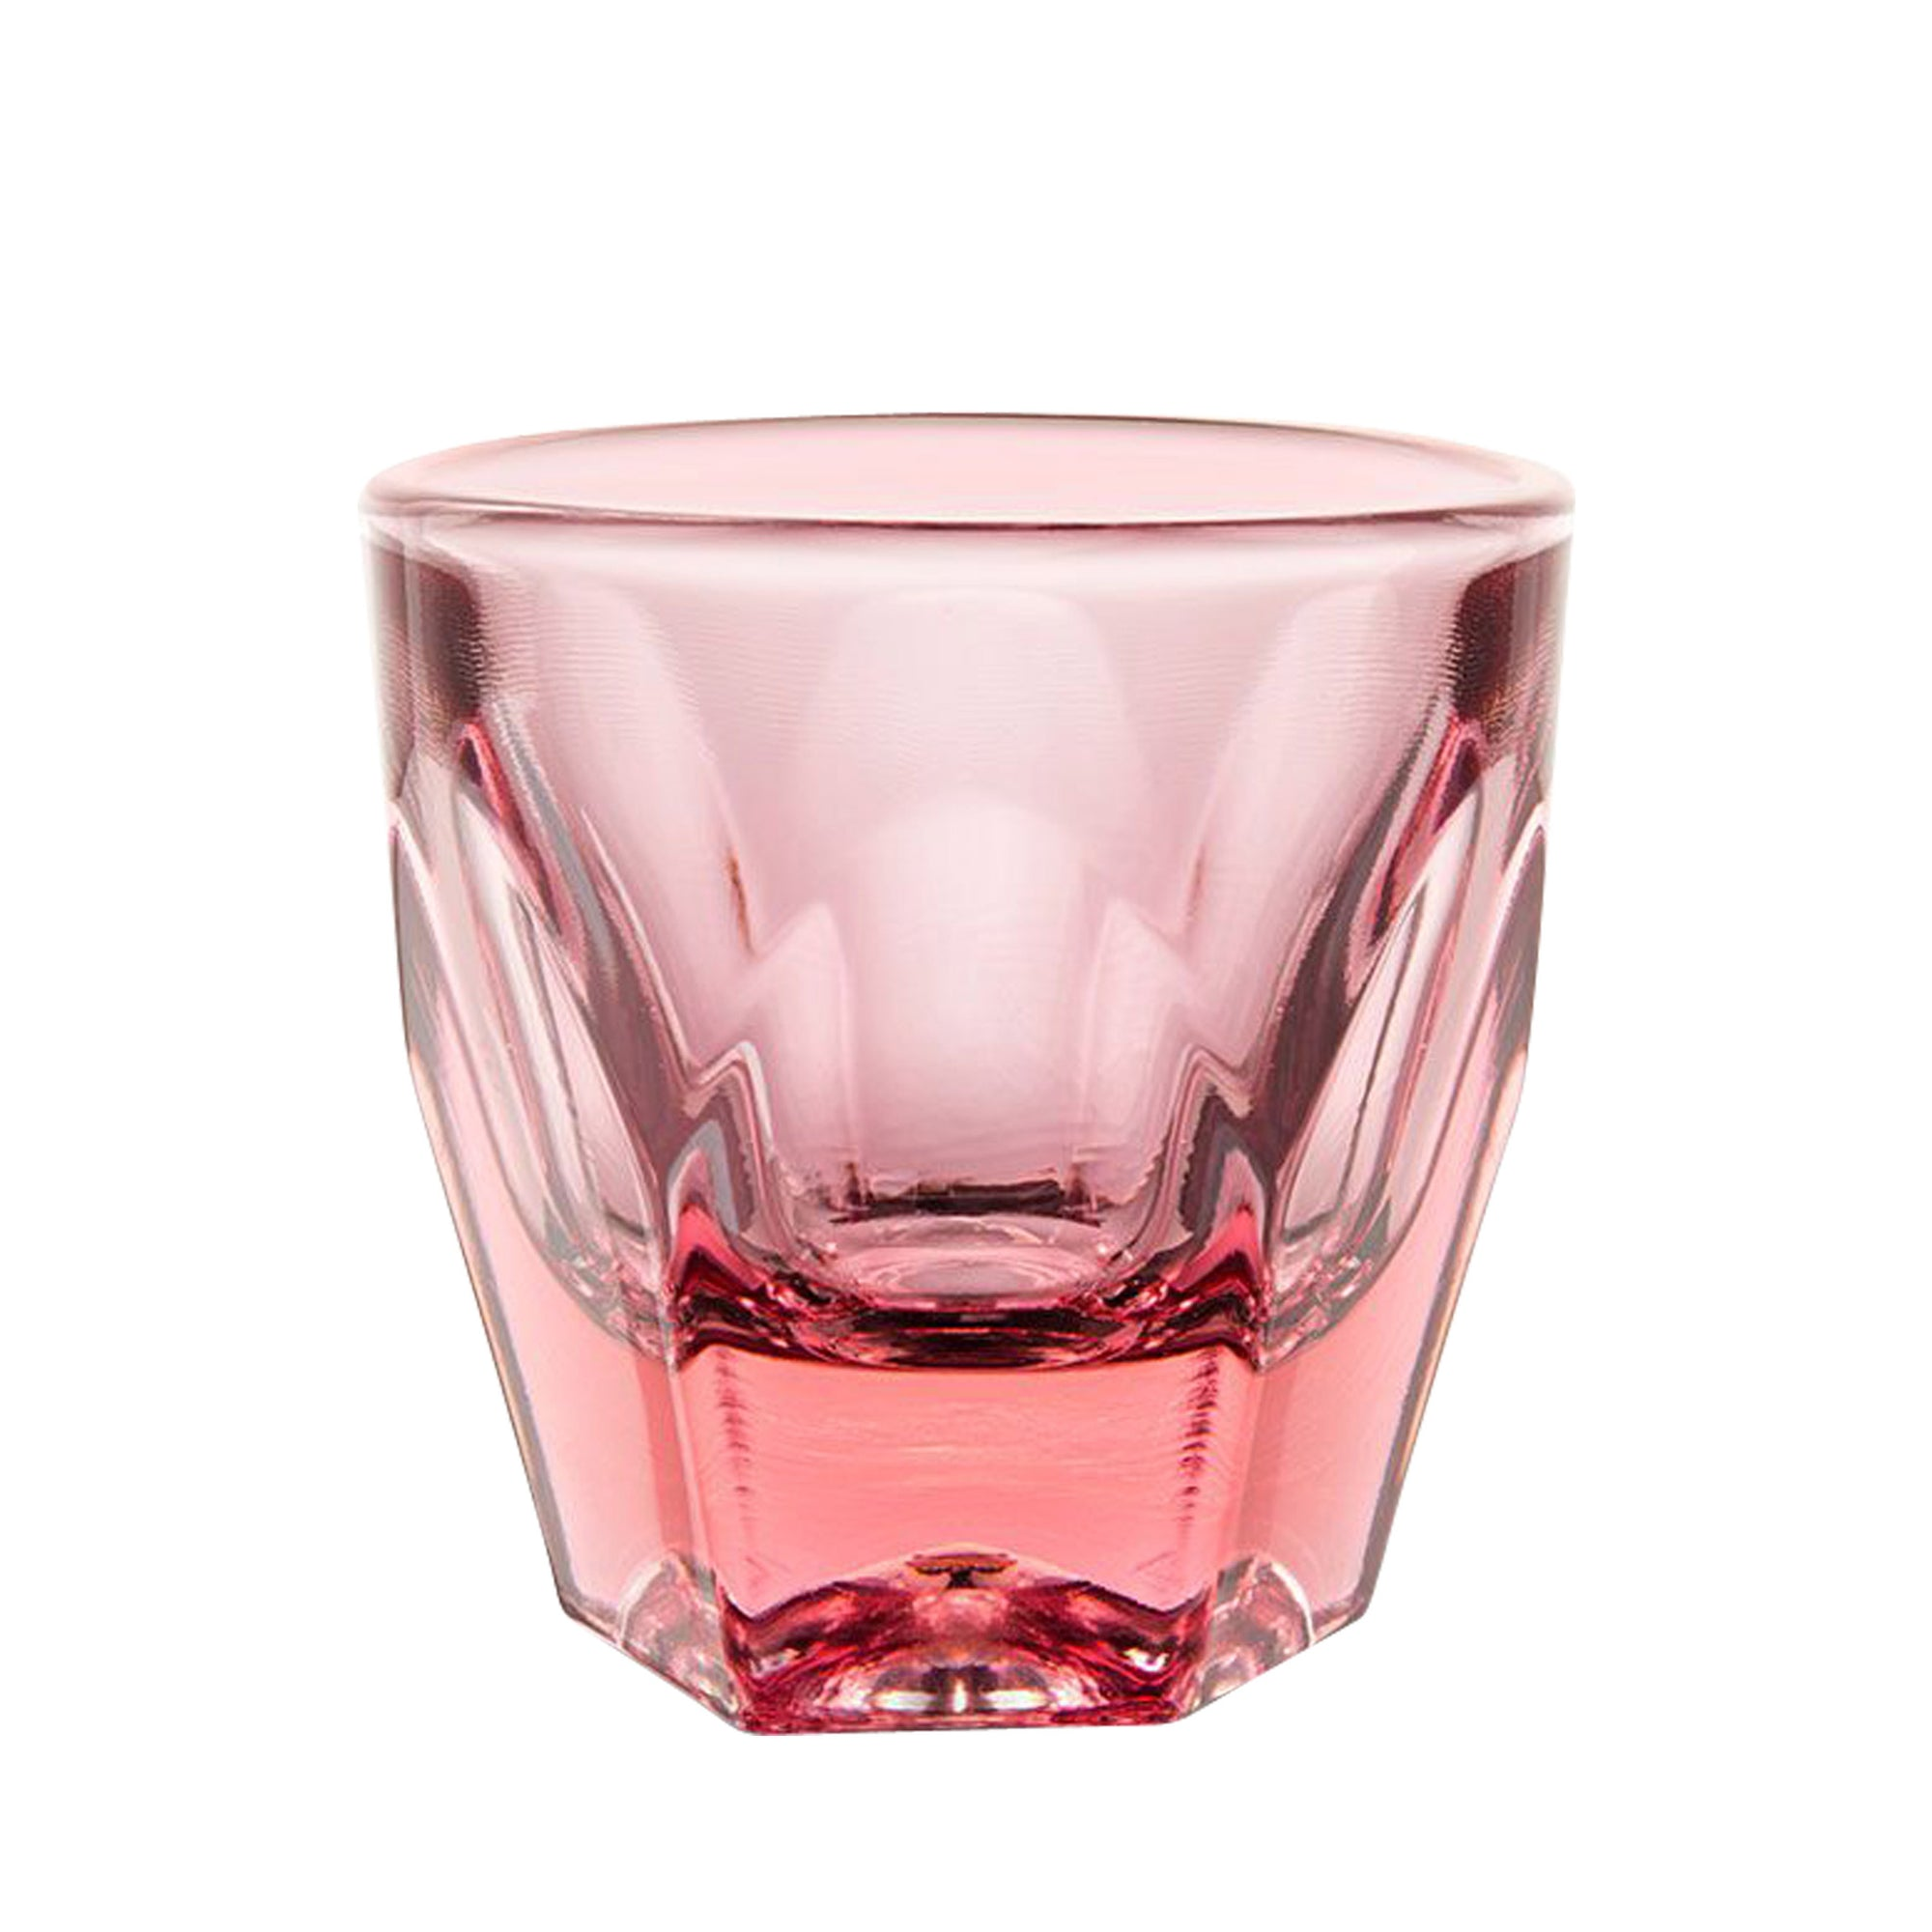 NN Vero Cortado Glass - Rose 125ml - Espresso Gear